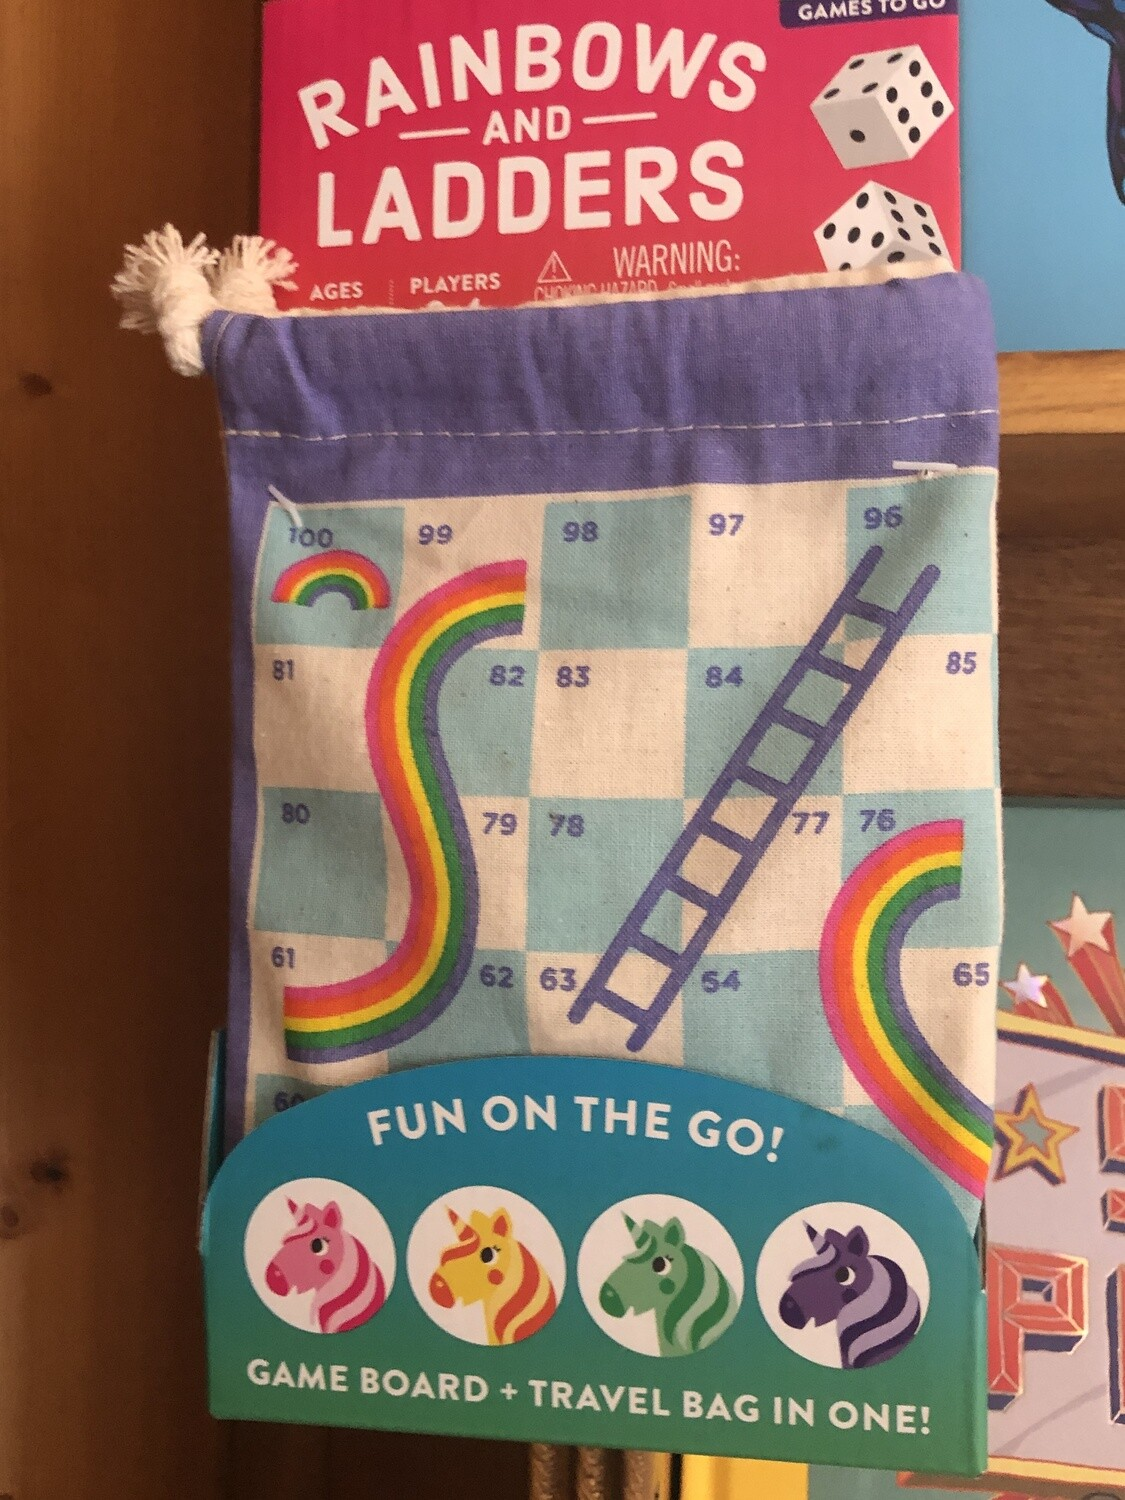 Rainbows and Ladders